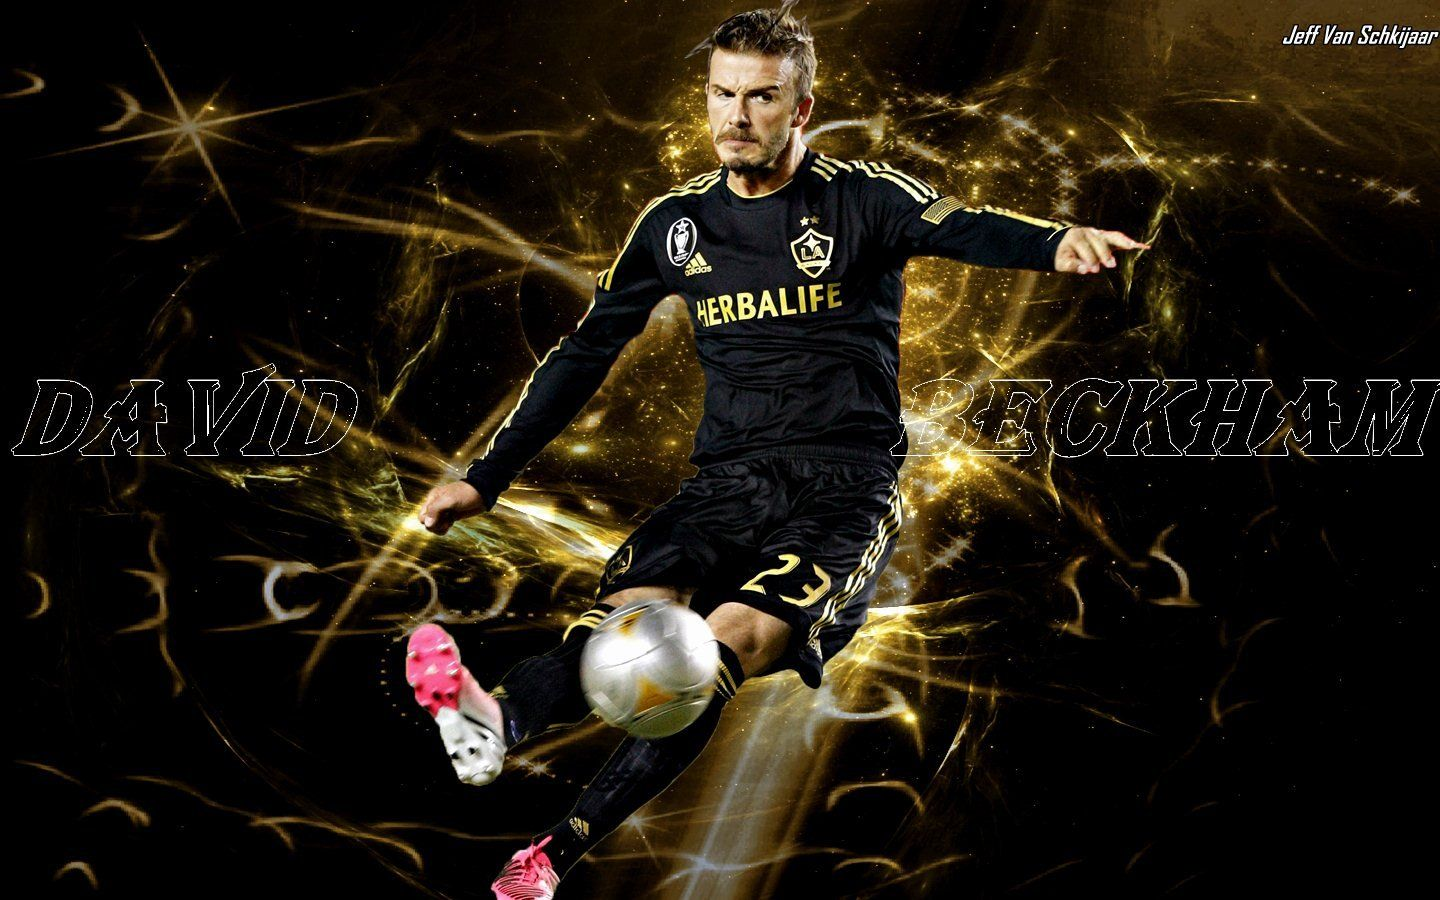 David beckham playing soccer wallpaper hd